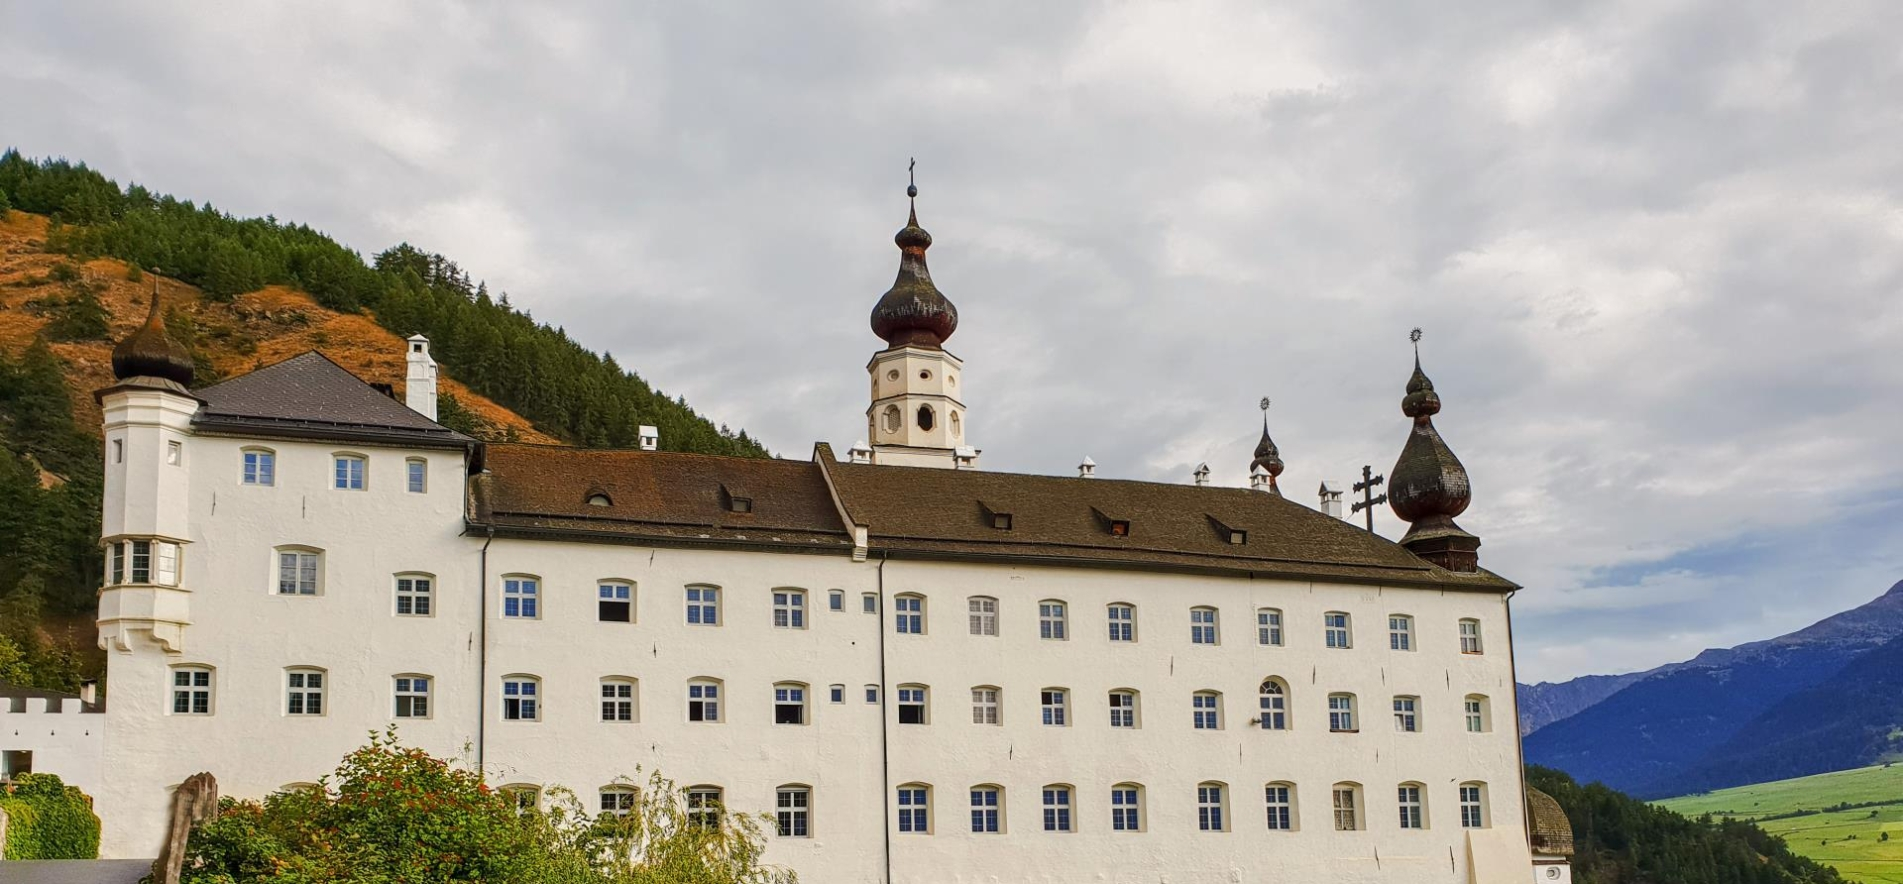 Abbey Marienberg - It is a place of peacefulness and strength